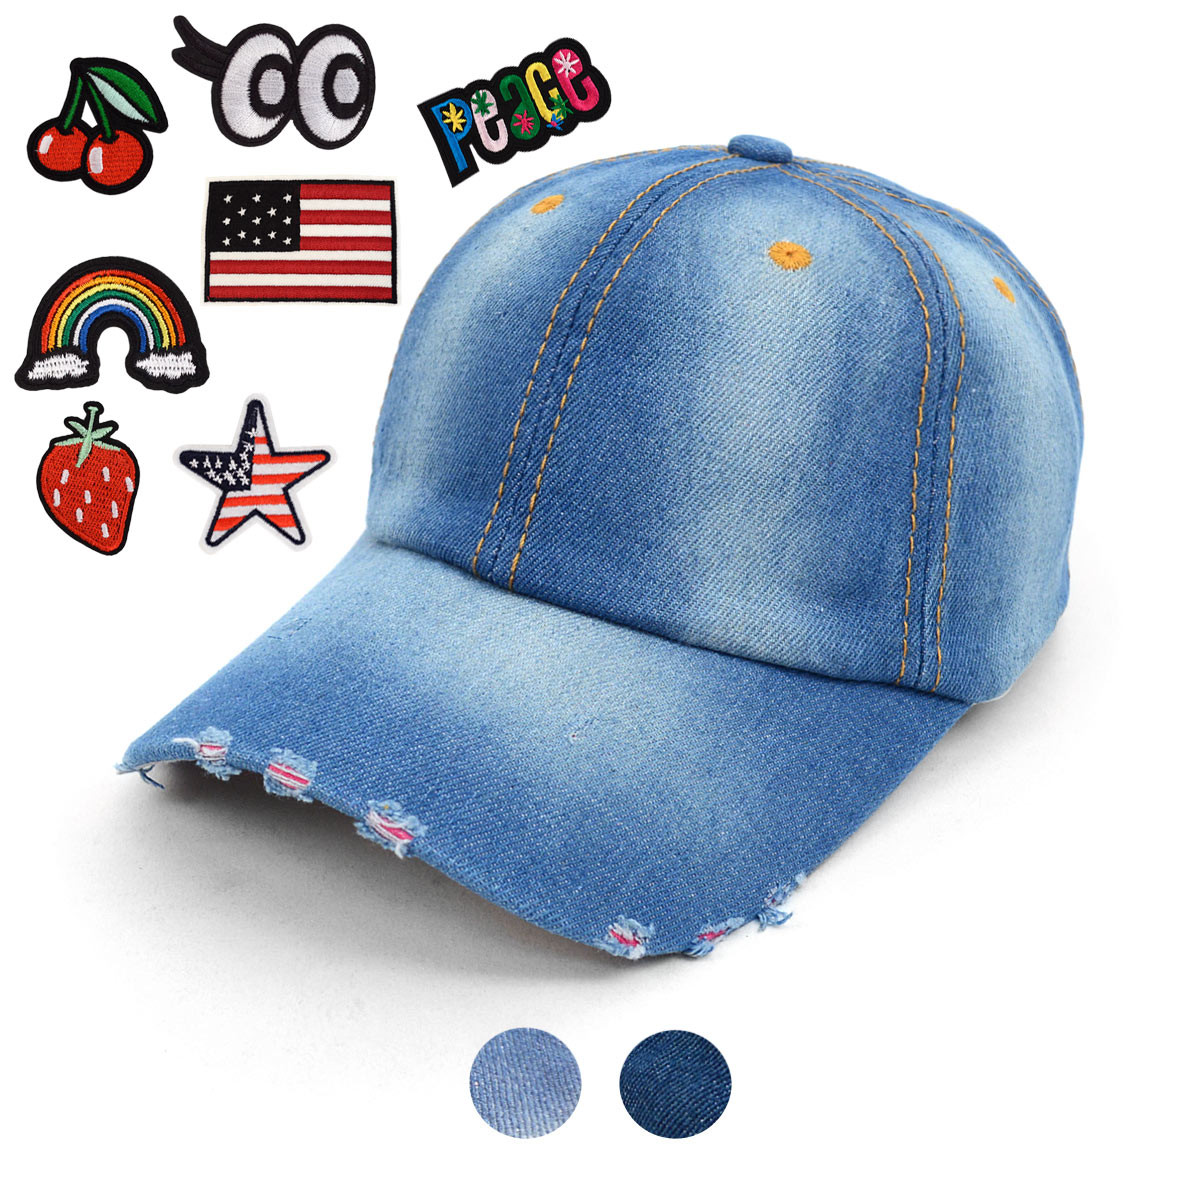 Blank or Patched Denim Baseball Cap JCAP